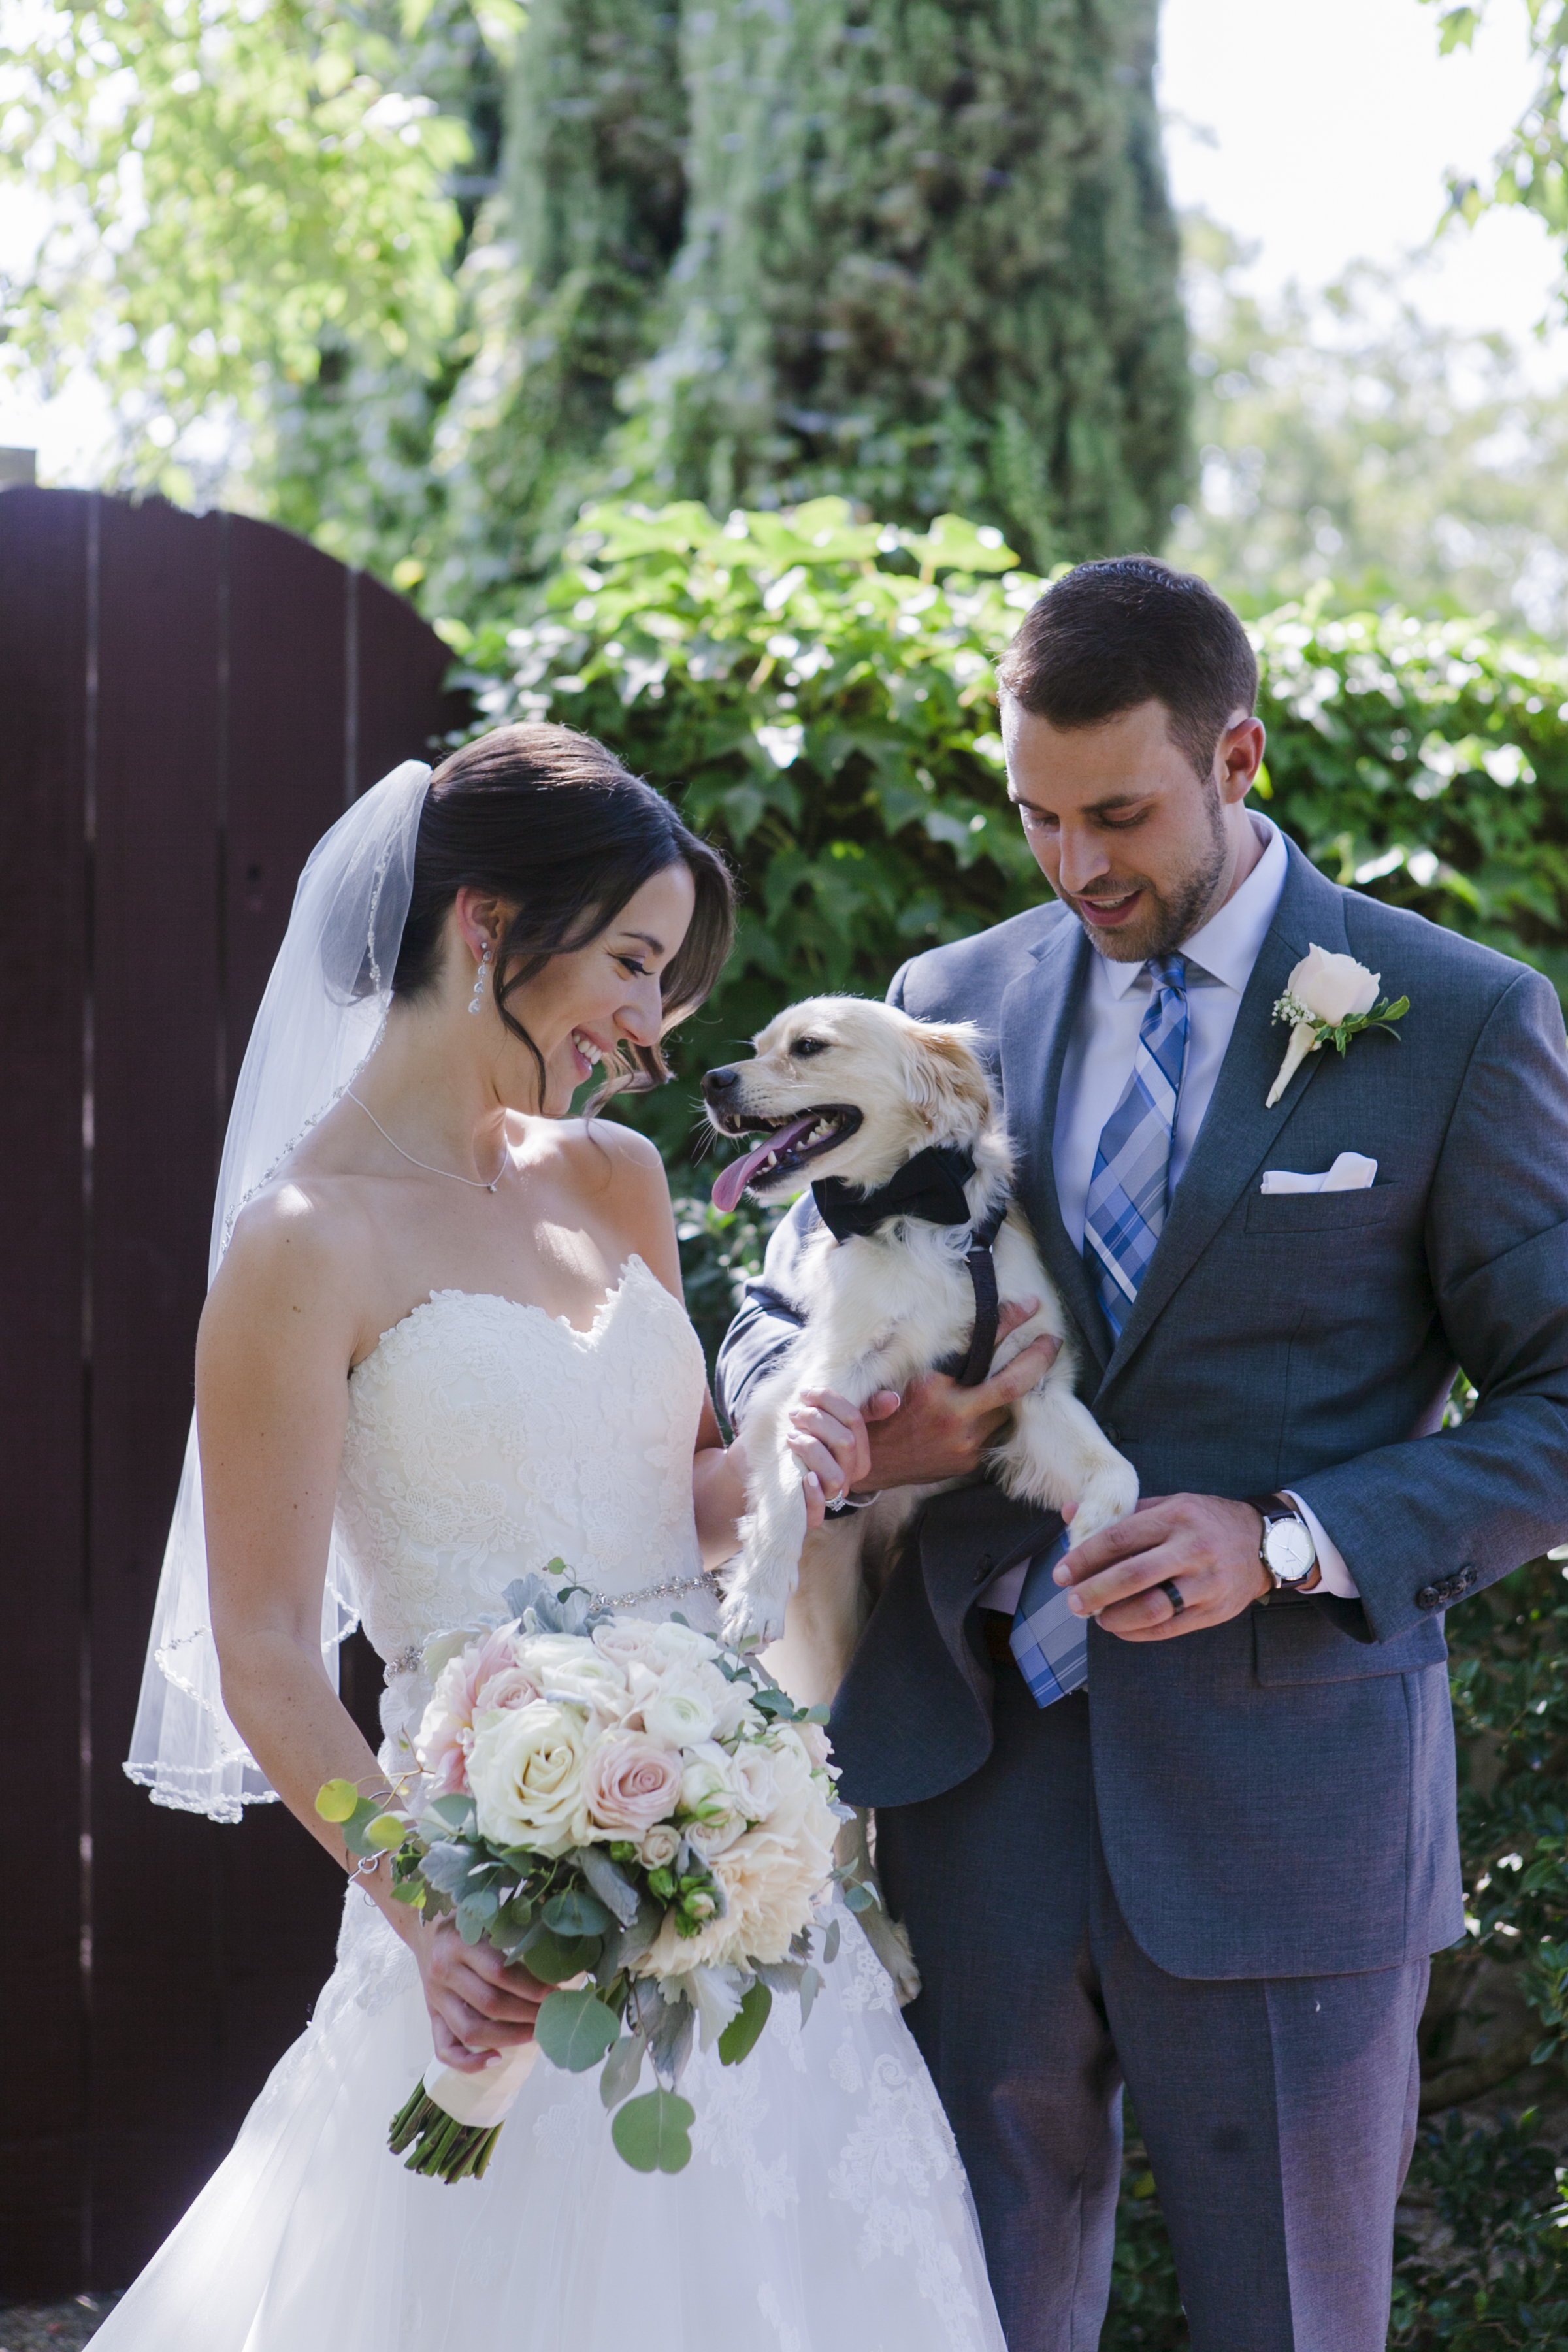 2018-08-11 Bridal Bouquet and groom with dog.jpg